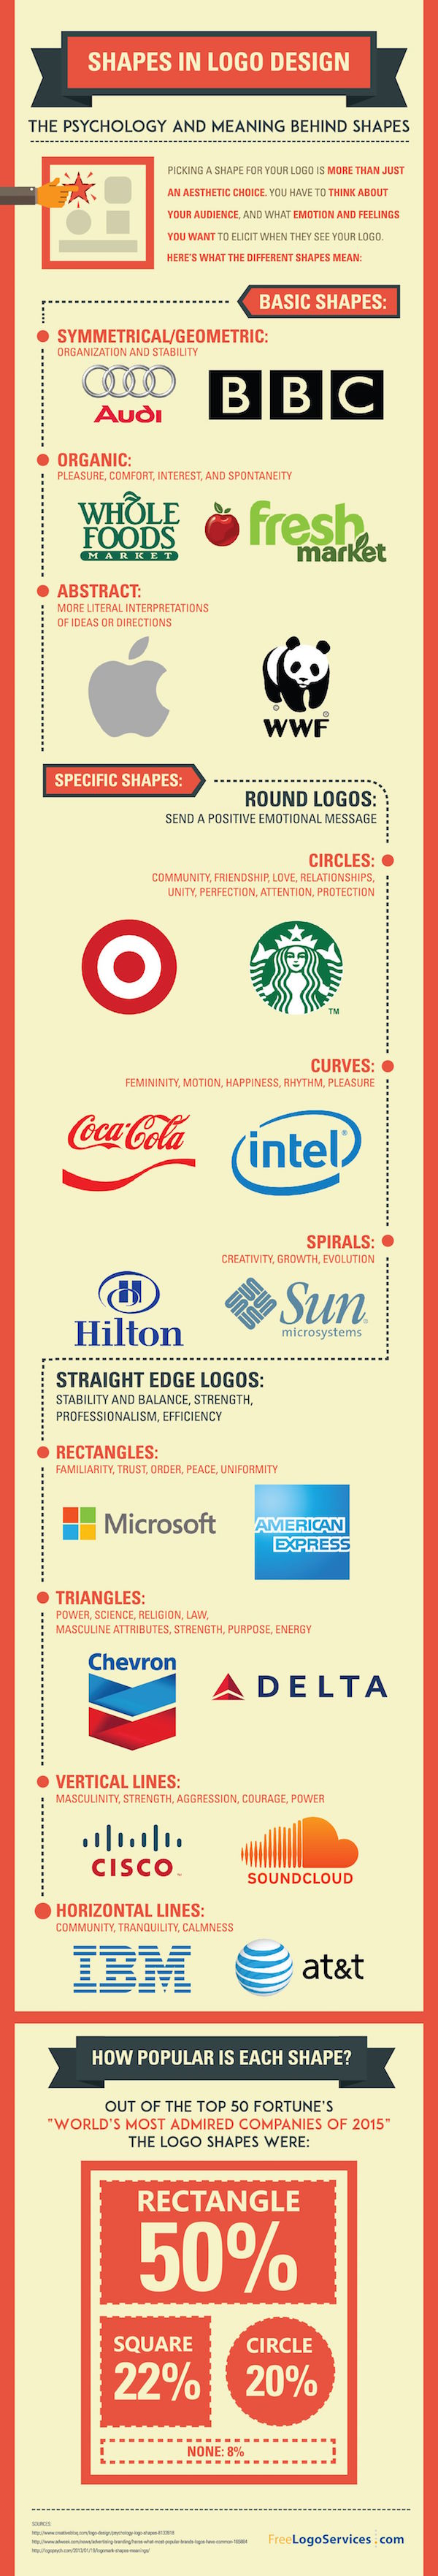 meaning-of-shapes-logos-compressor.jpg